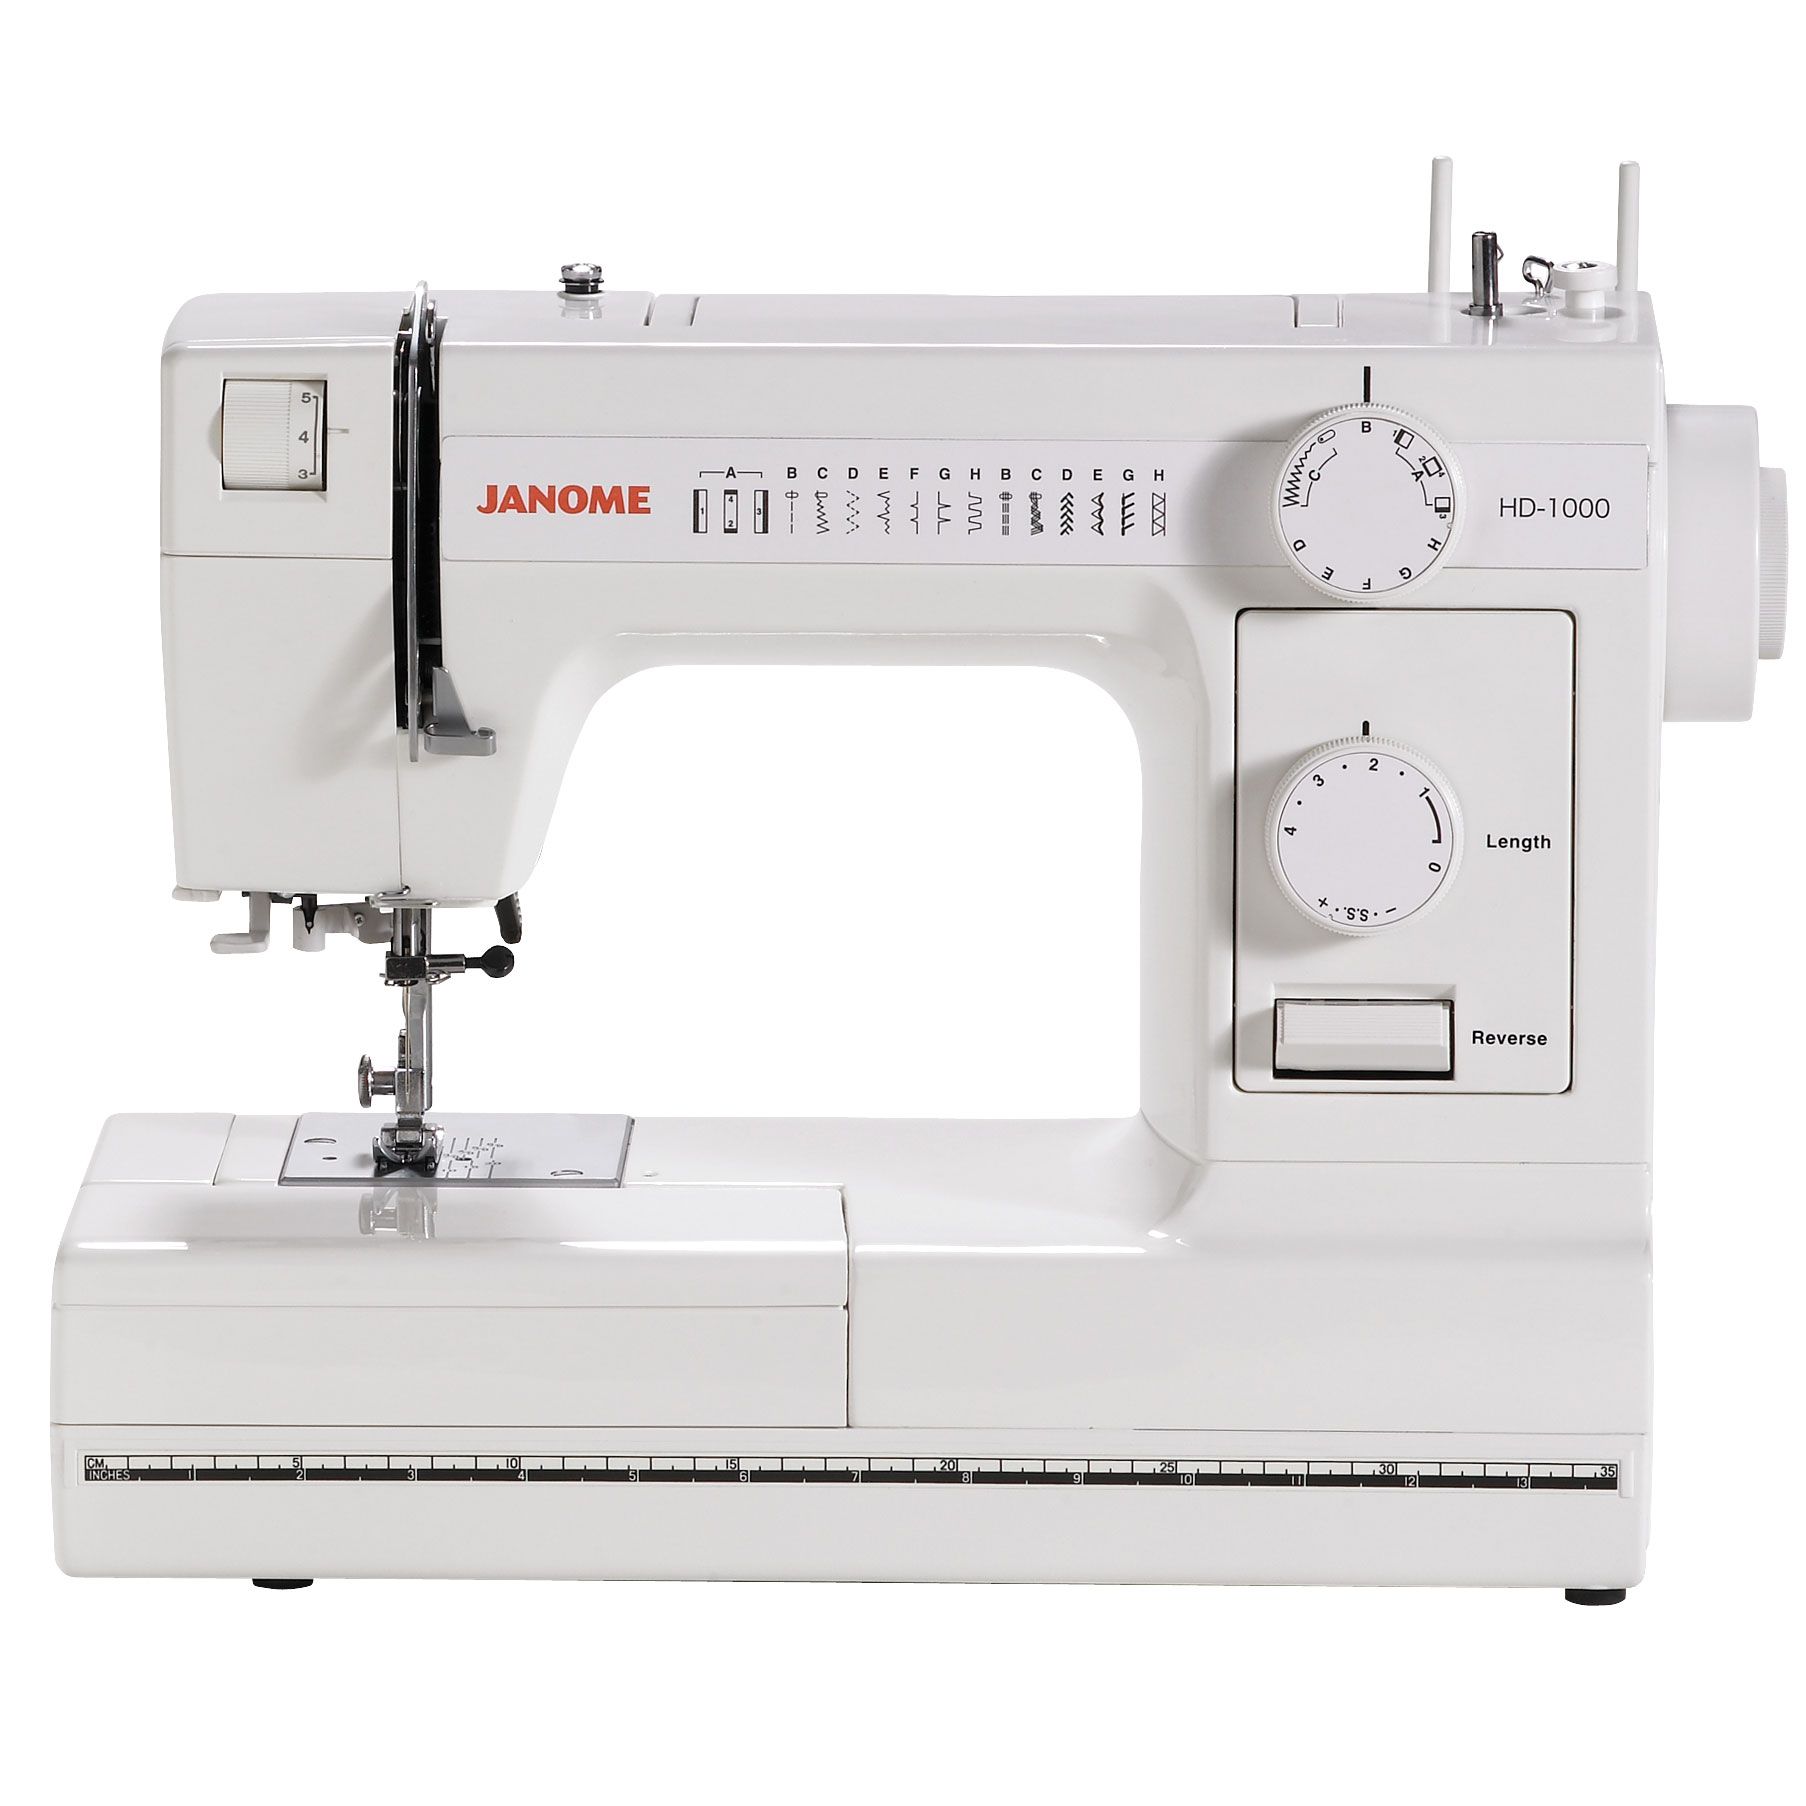 Refurbished Janome HD1000 Mechanical Sewing Machine